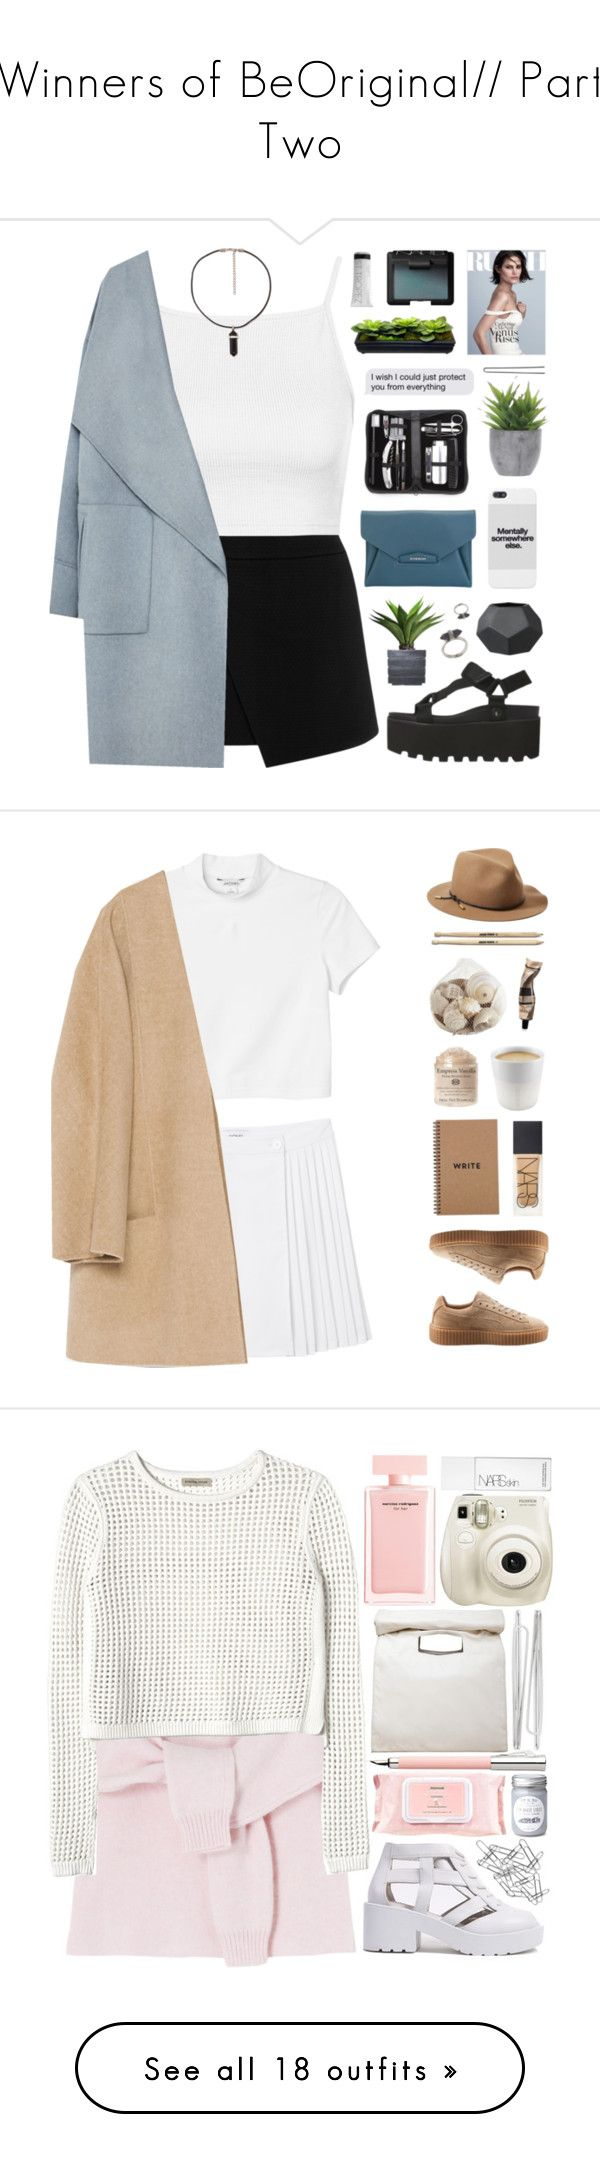 """Winners of BeOriginal// Part Two"" by giulls1 ❤ liked on Polyvore featuring Warehouse, Topshop, Zara, Givenchy, Karen Kane, Royce Leather, Lux-Art Silks, Laura Ashley, Hershesons and NARS Cosmetics"